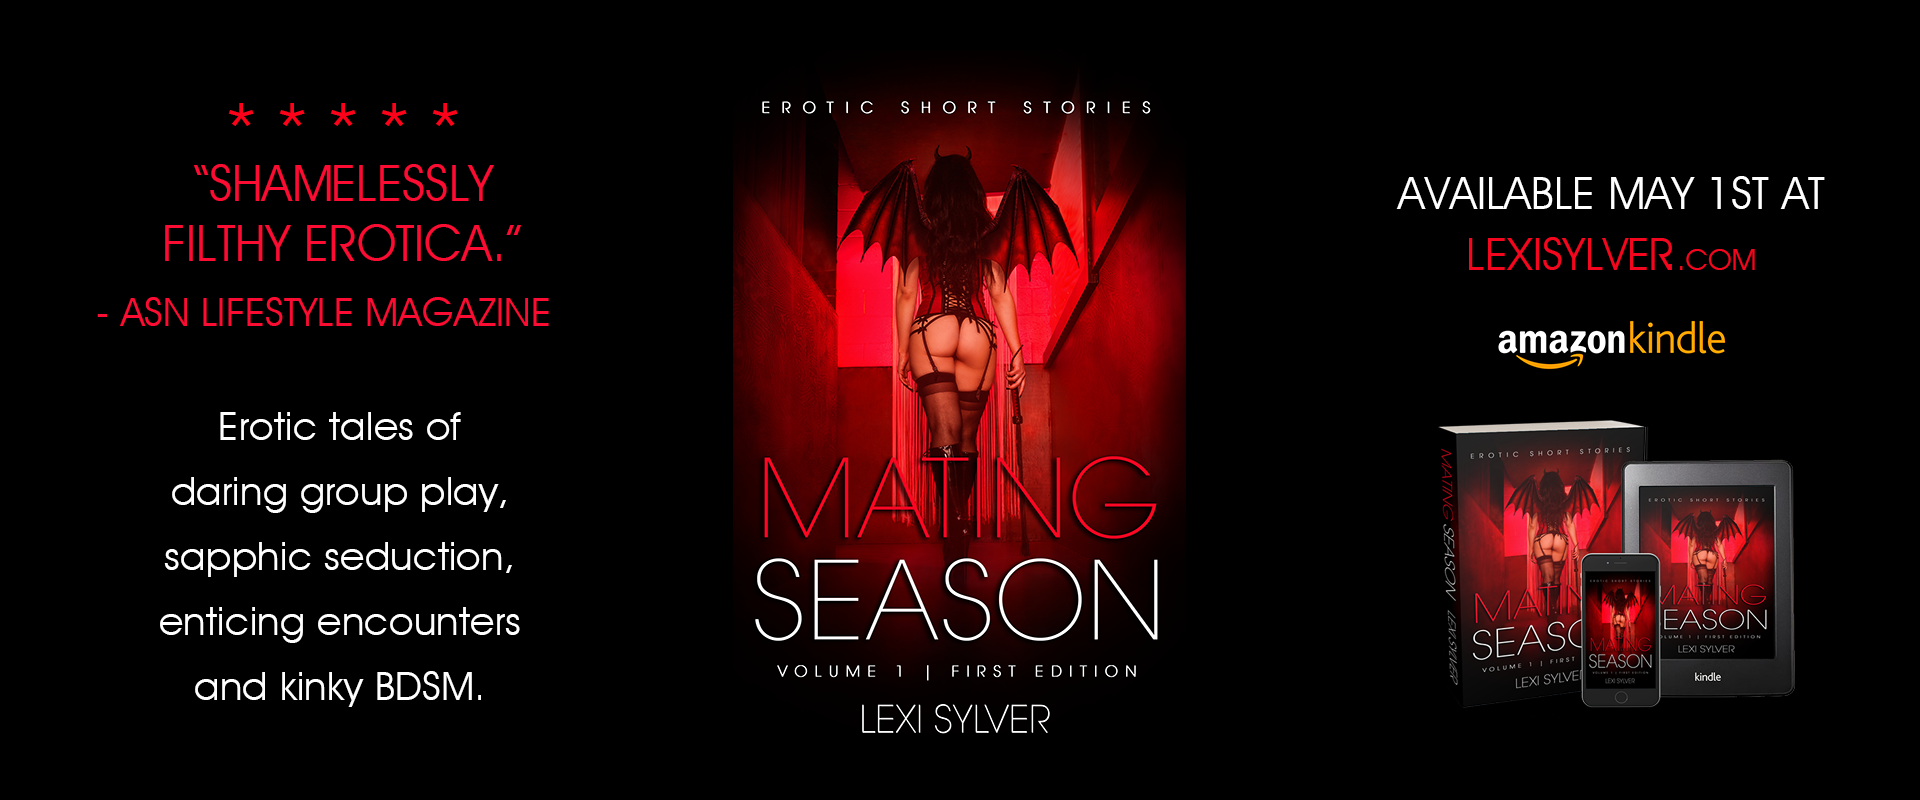 Mating Season Erotic Short Stories Lexi Sylver Cover